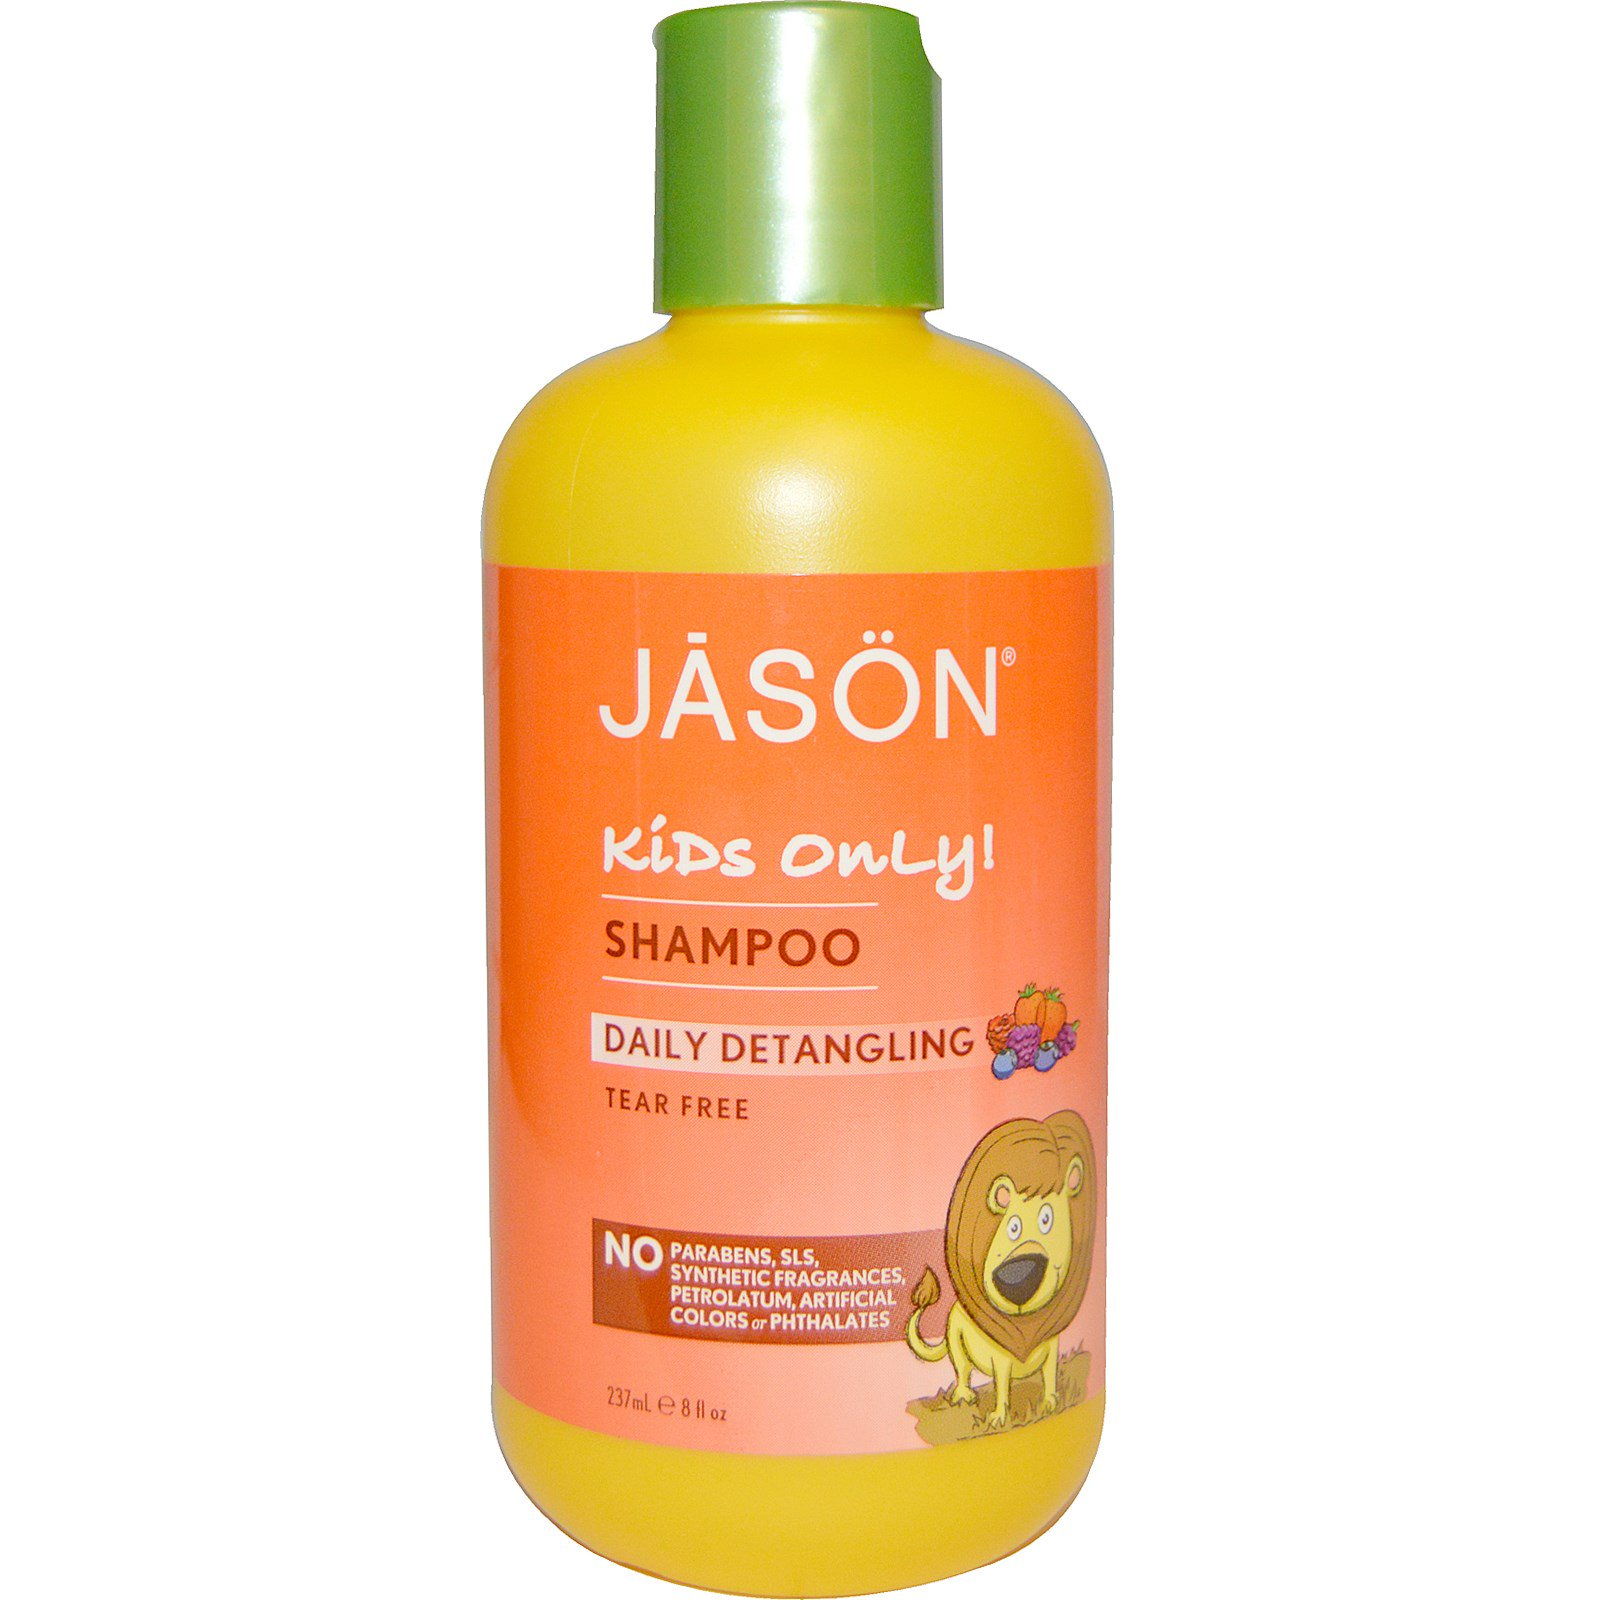 Shampoos & Conditioners 6 X Kids No More Knots Shampoo Tear Free Detangler Condition Gentle Orange Scent Shampoos & Soaps